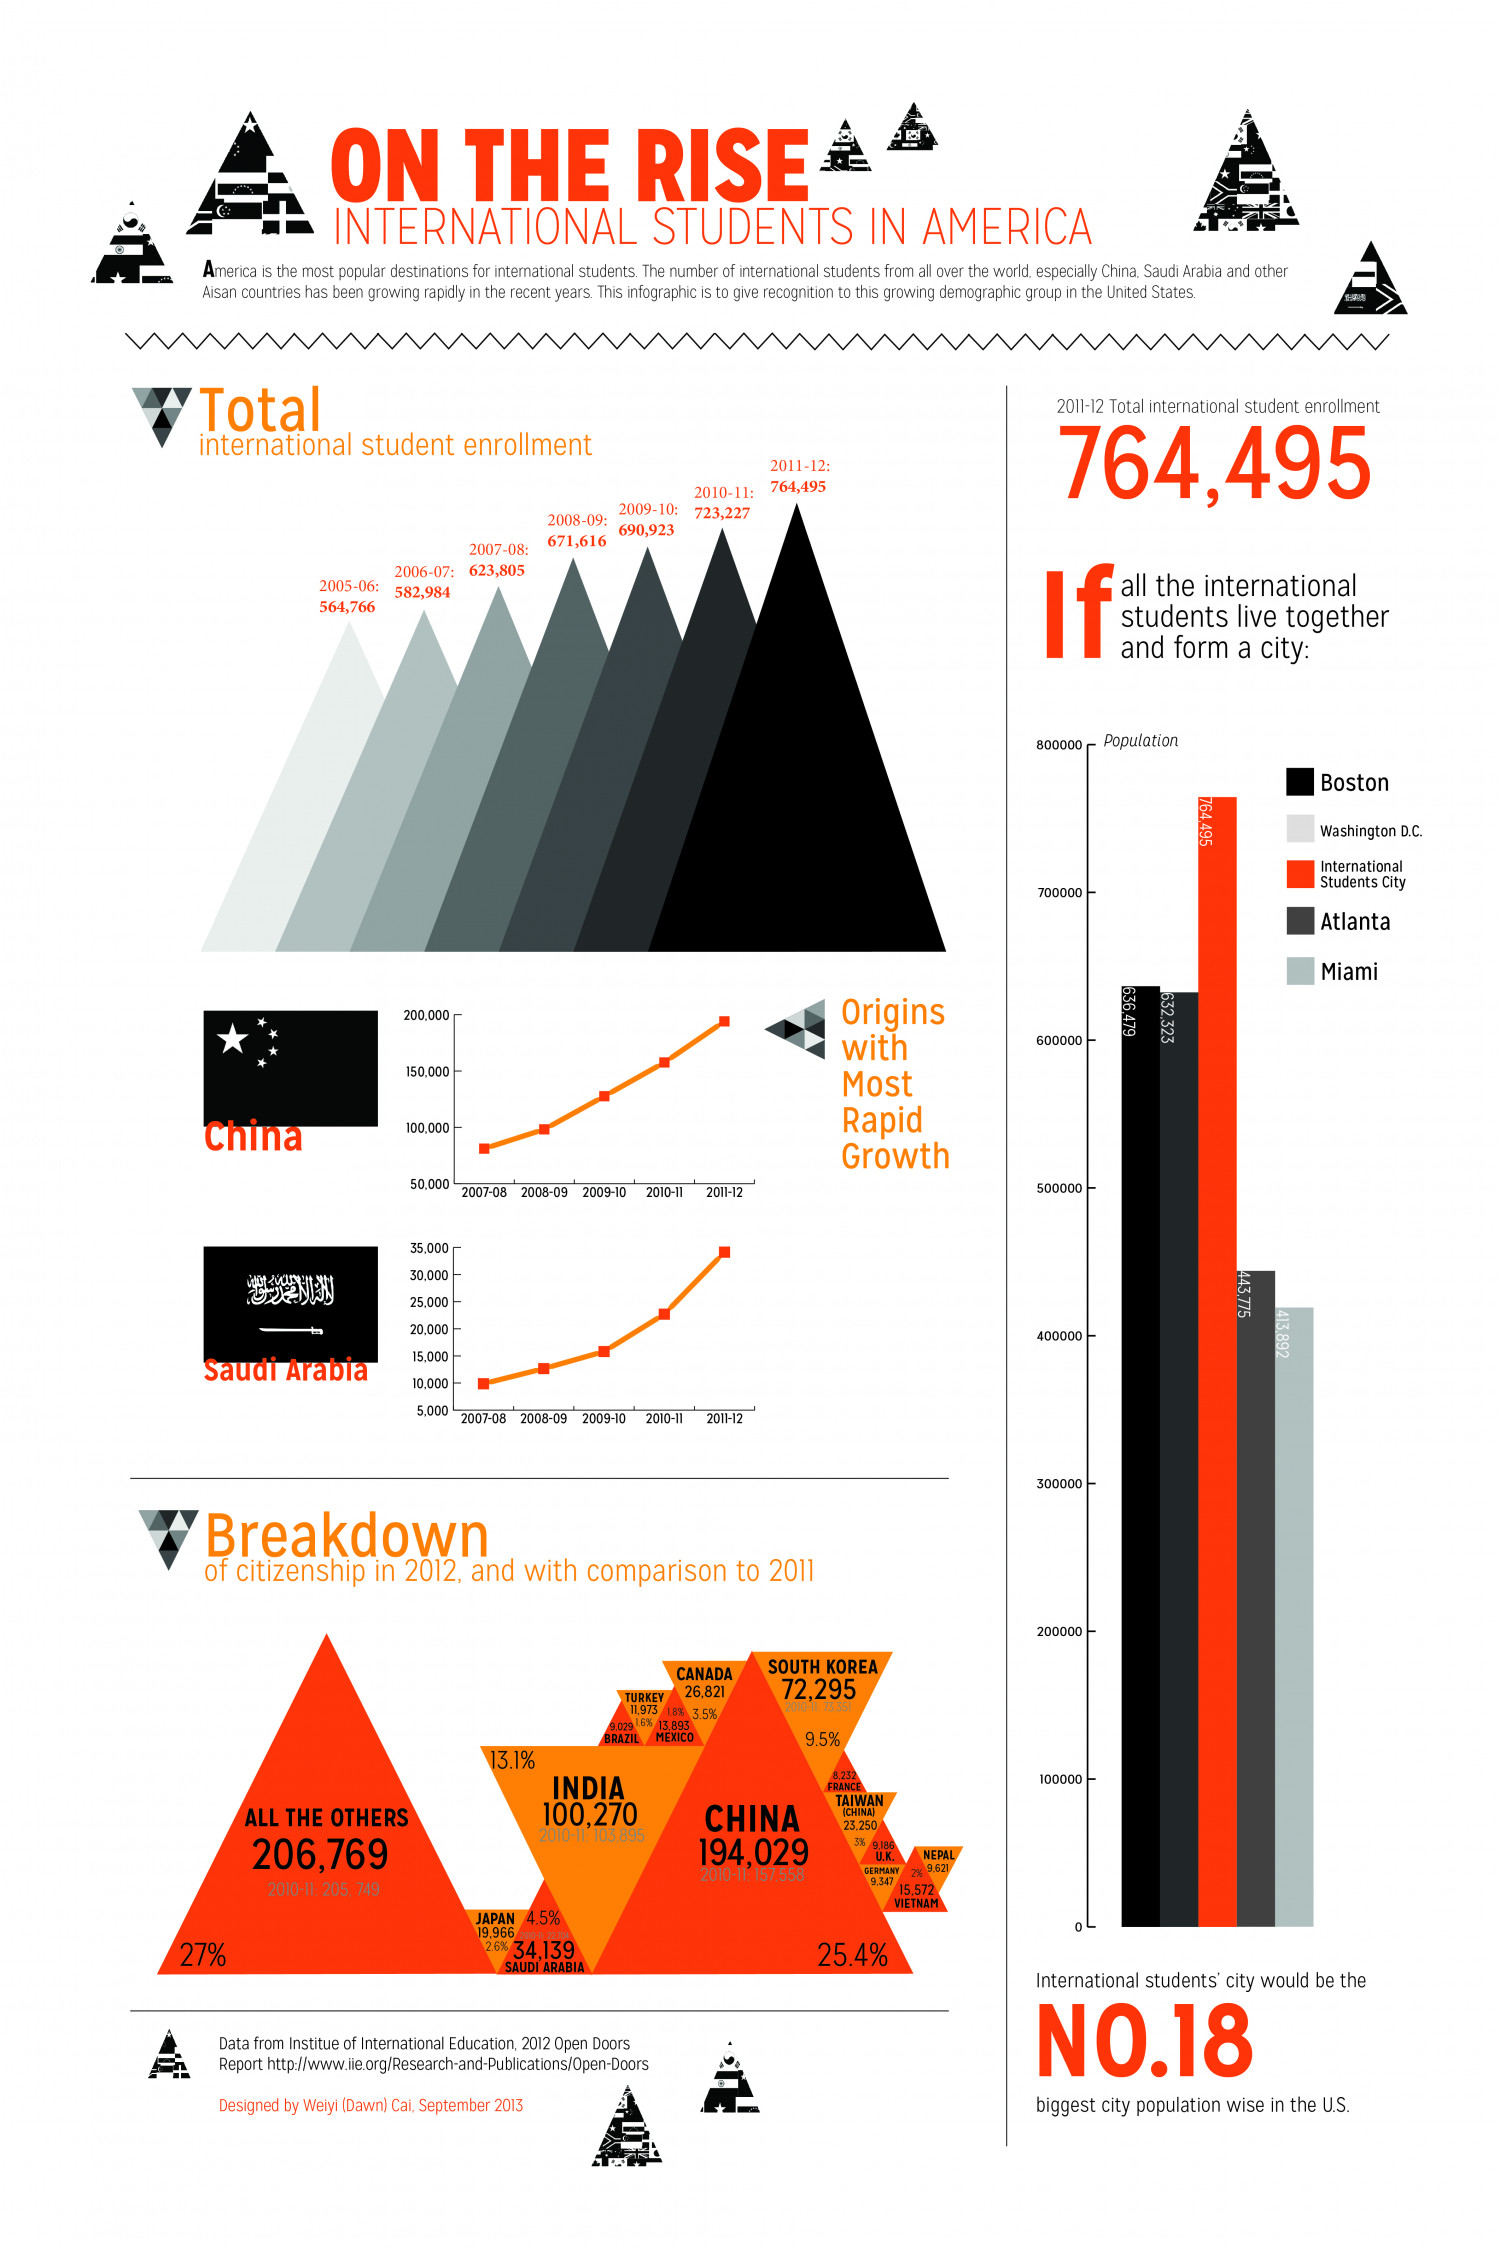 On the Rise: International Students in America Infographic